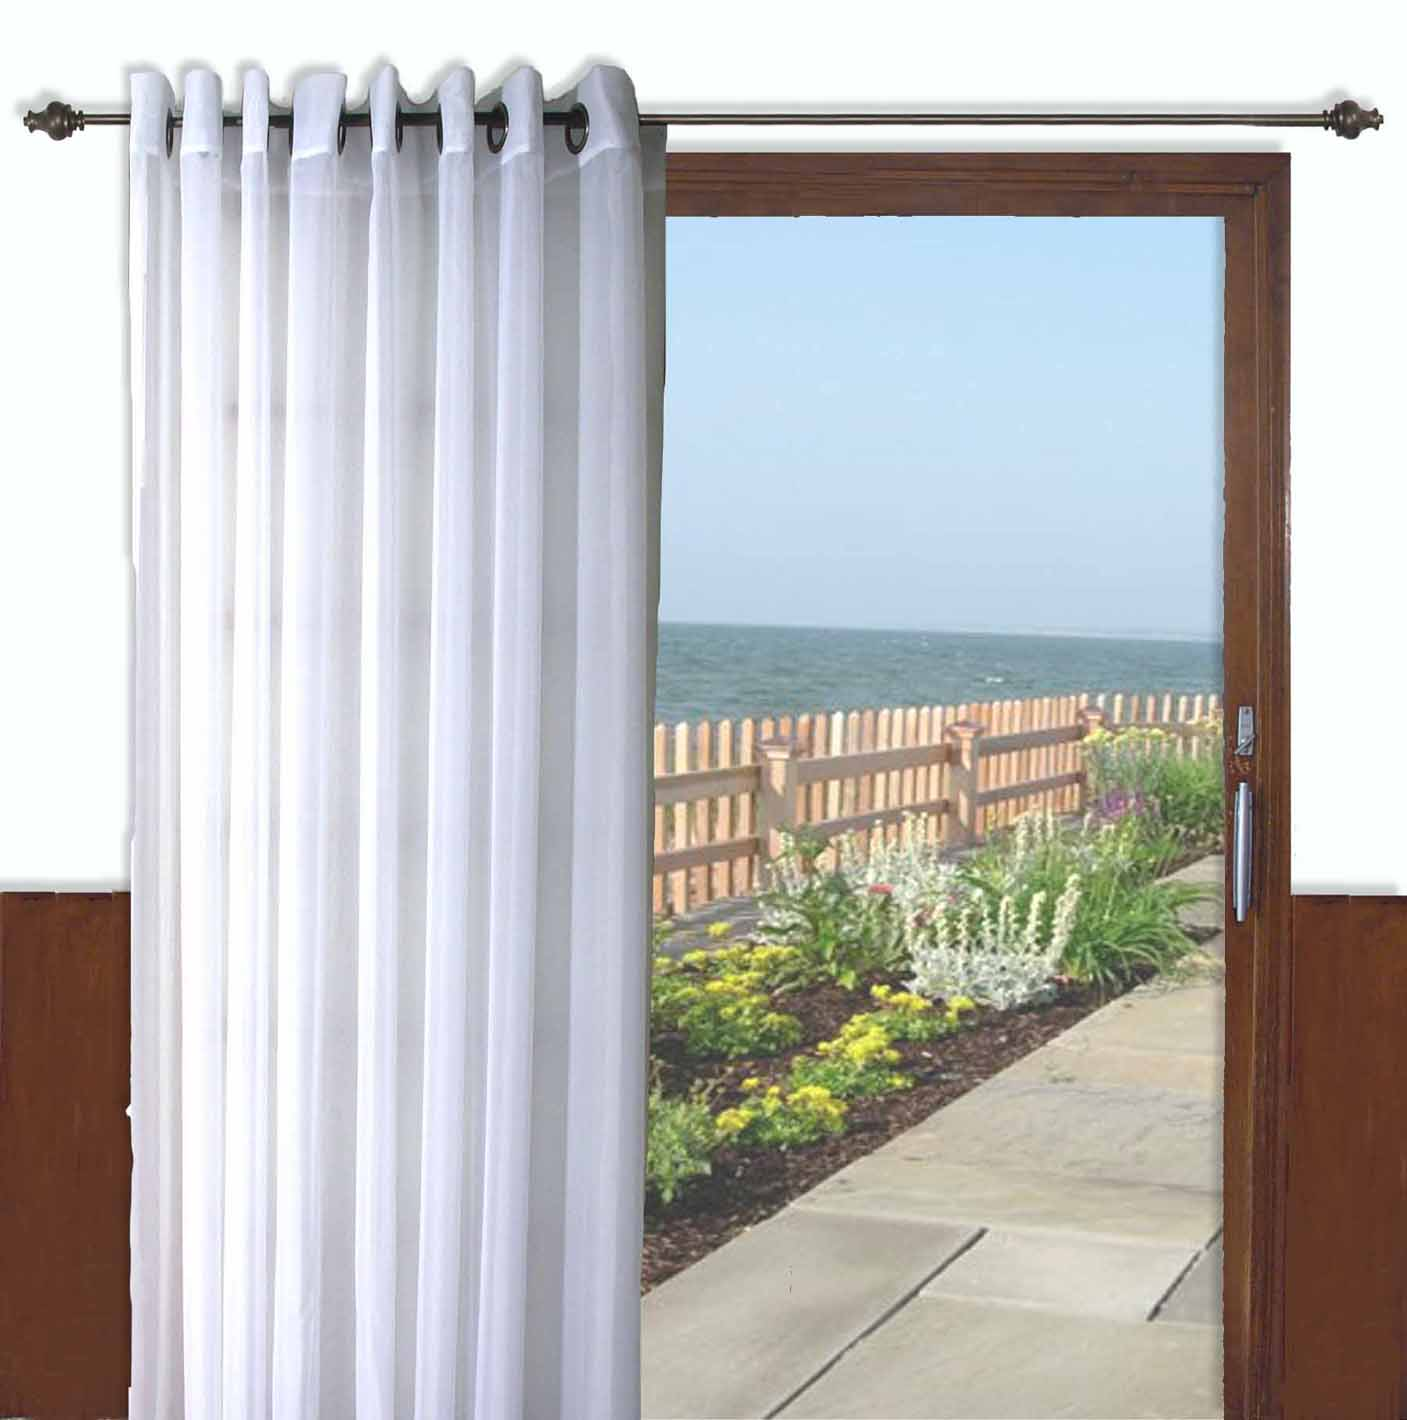 Oyster Bay Patio Panel With Wand